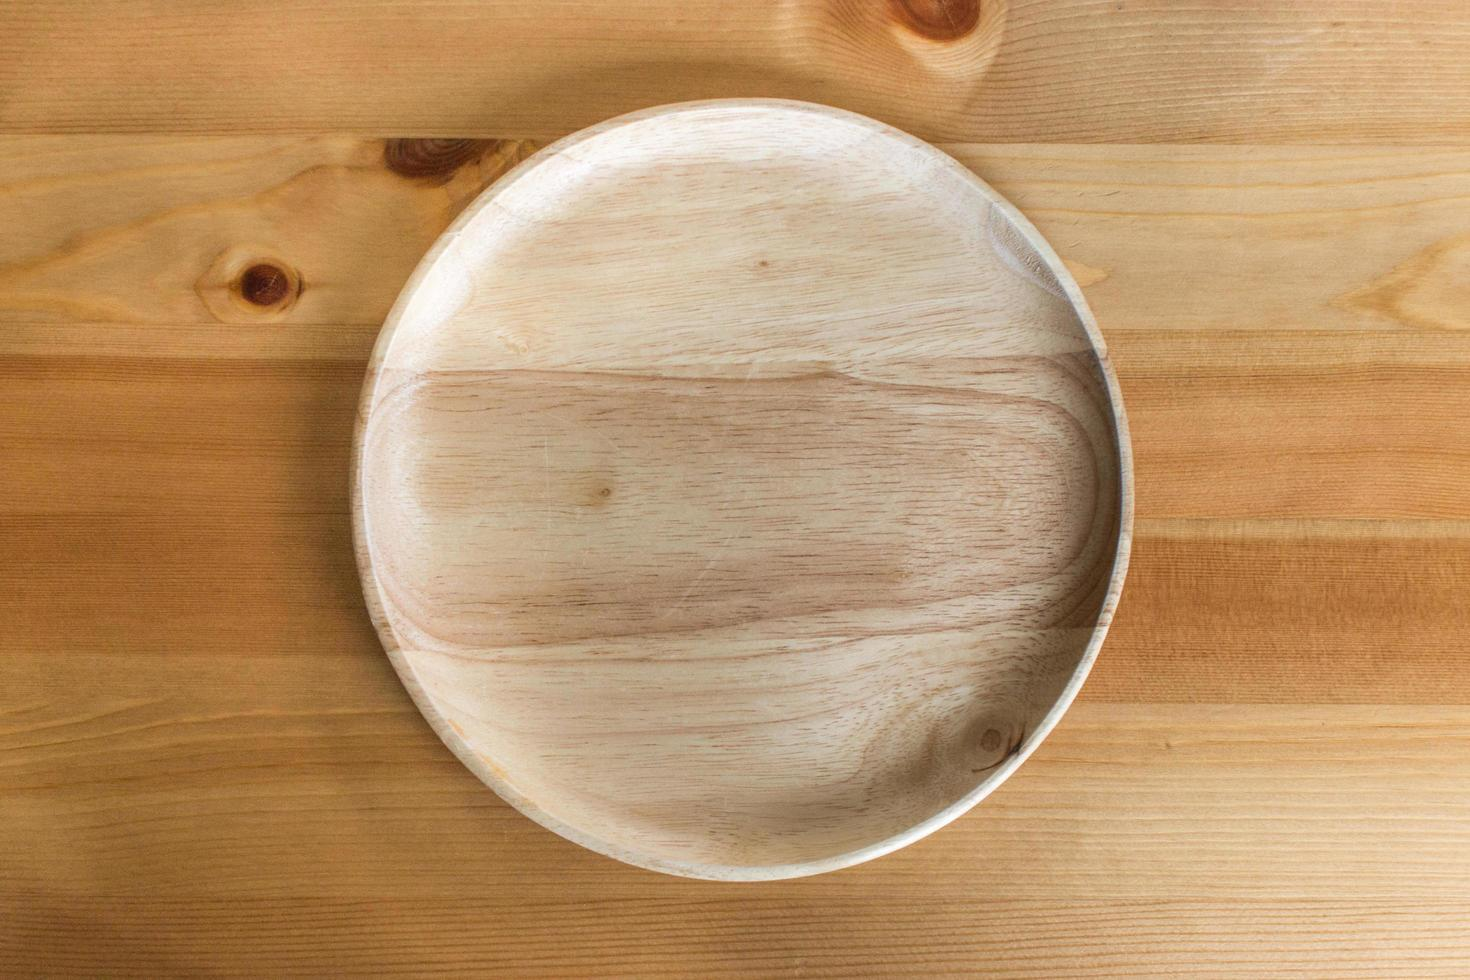 Wooden Plate On Wood Table Stock Photo